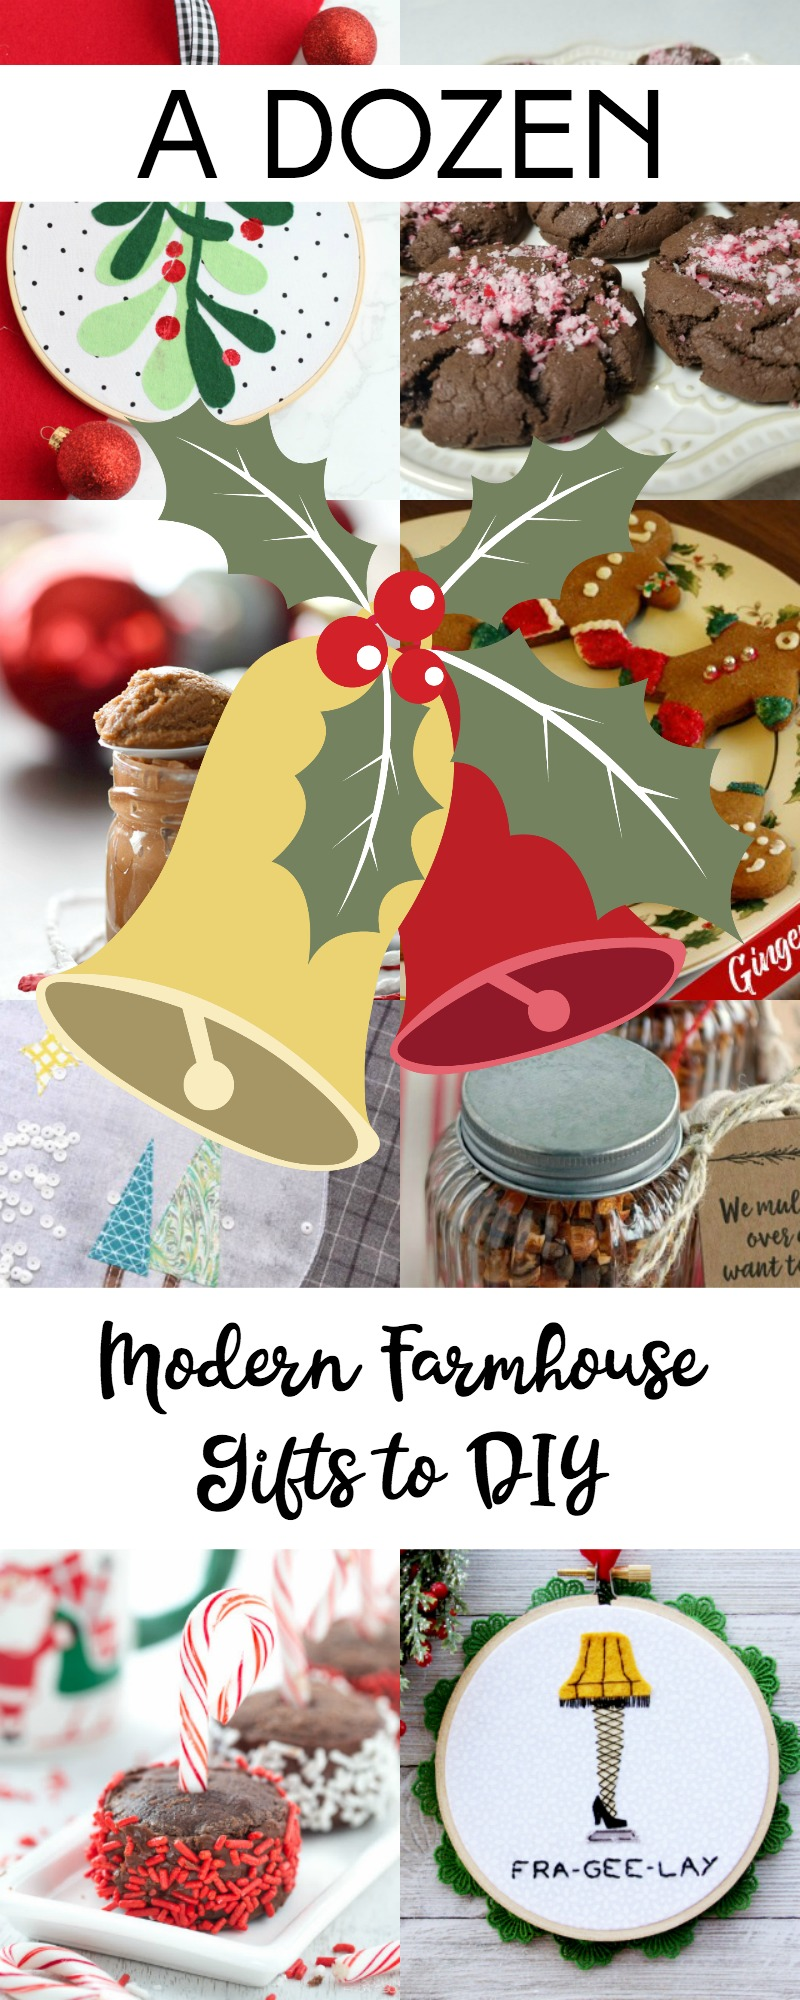 A Dozen Modern Farmhouse Gift to DIY